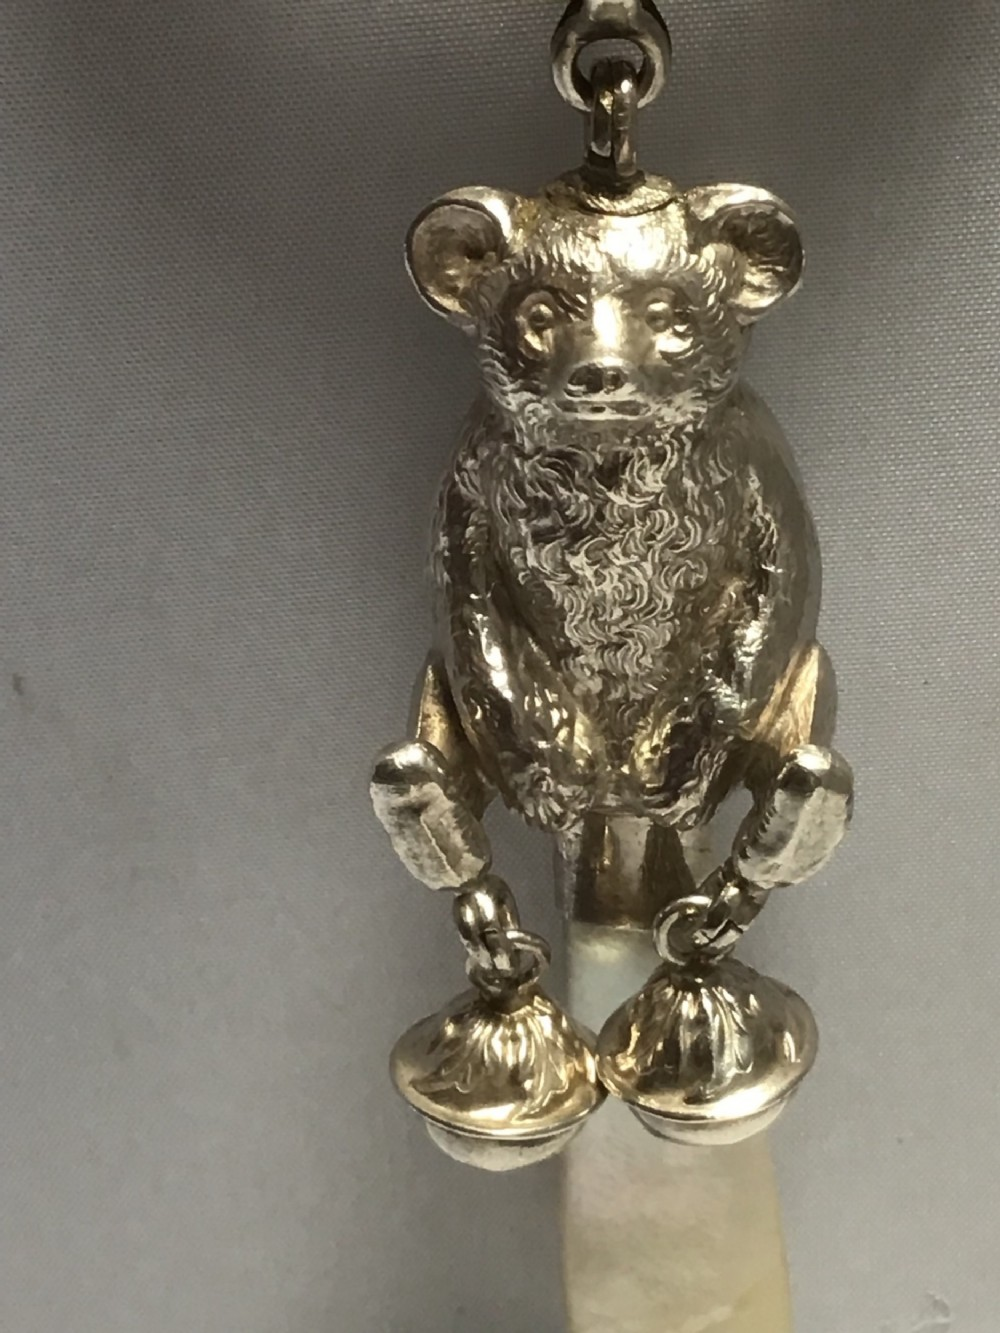 excellent solid silver bear rattle